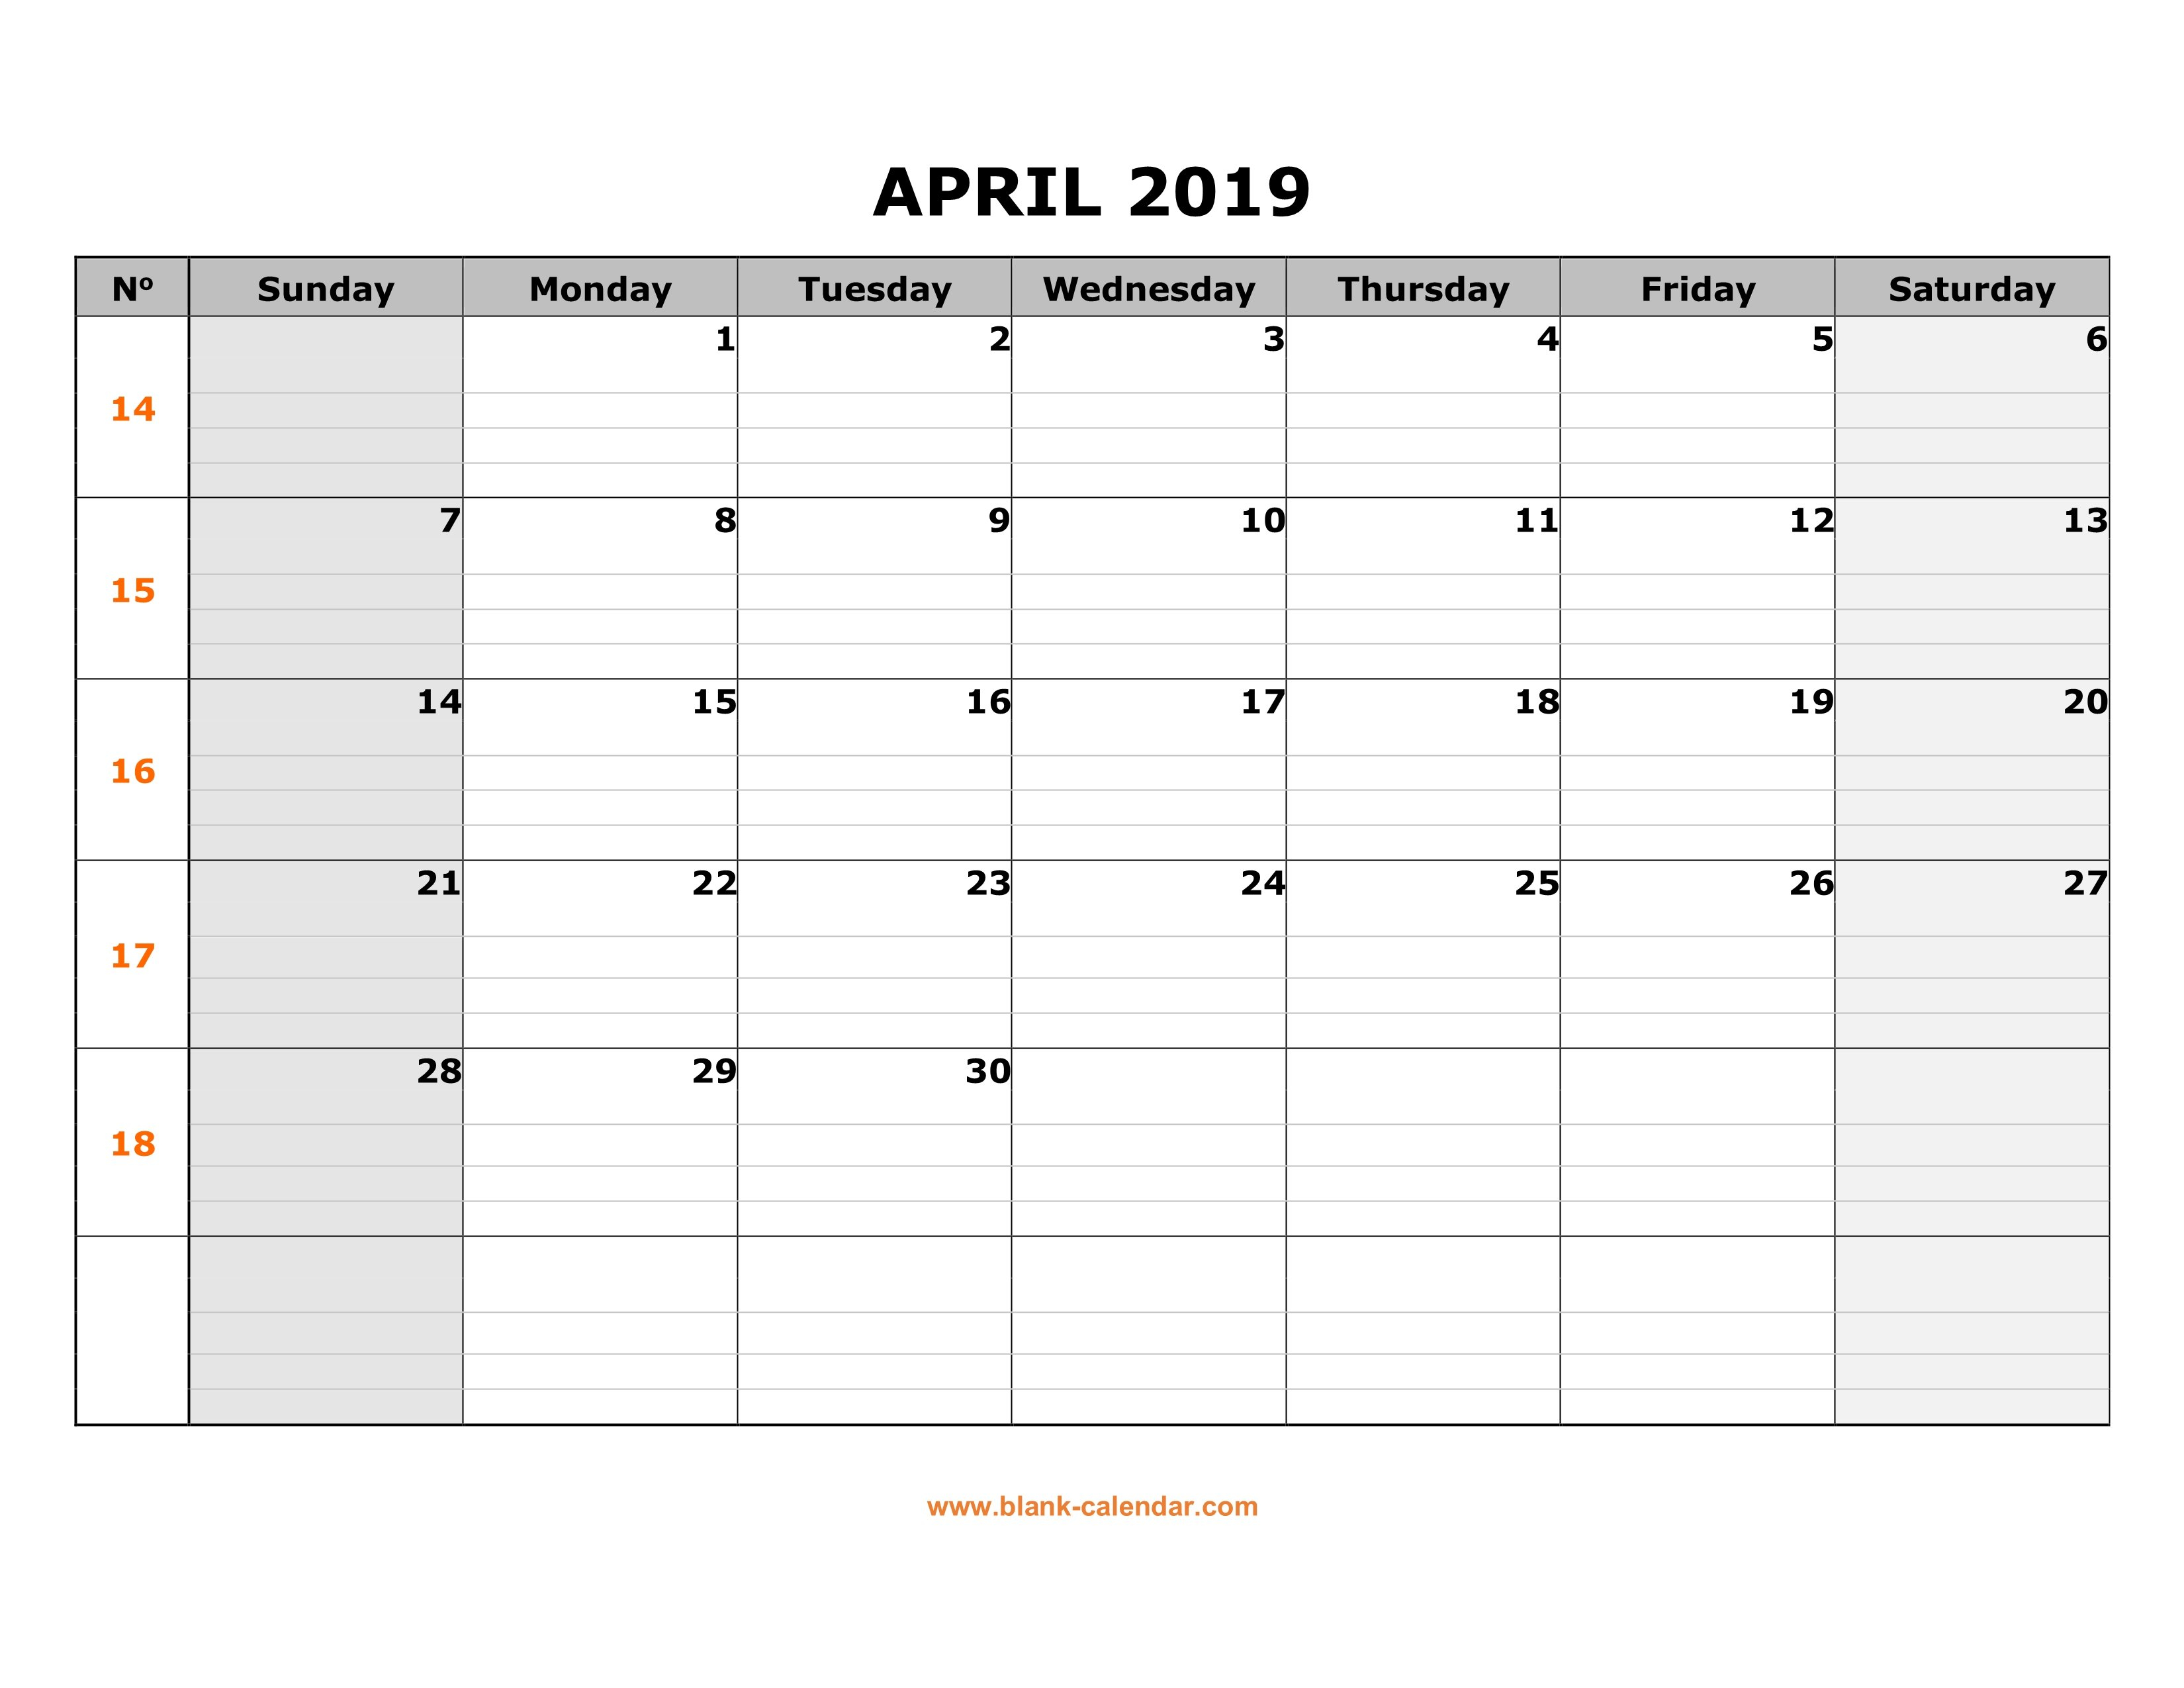 Free Download Printable April 2019 Calendar, Large Box Grid, Space Calendar 2019 With Lines